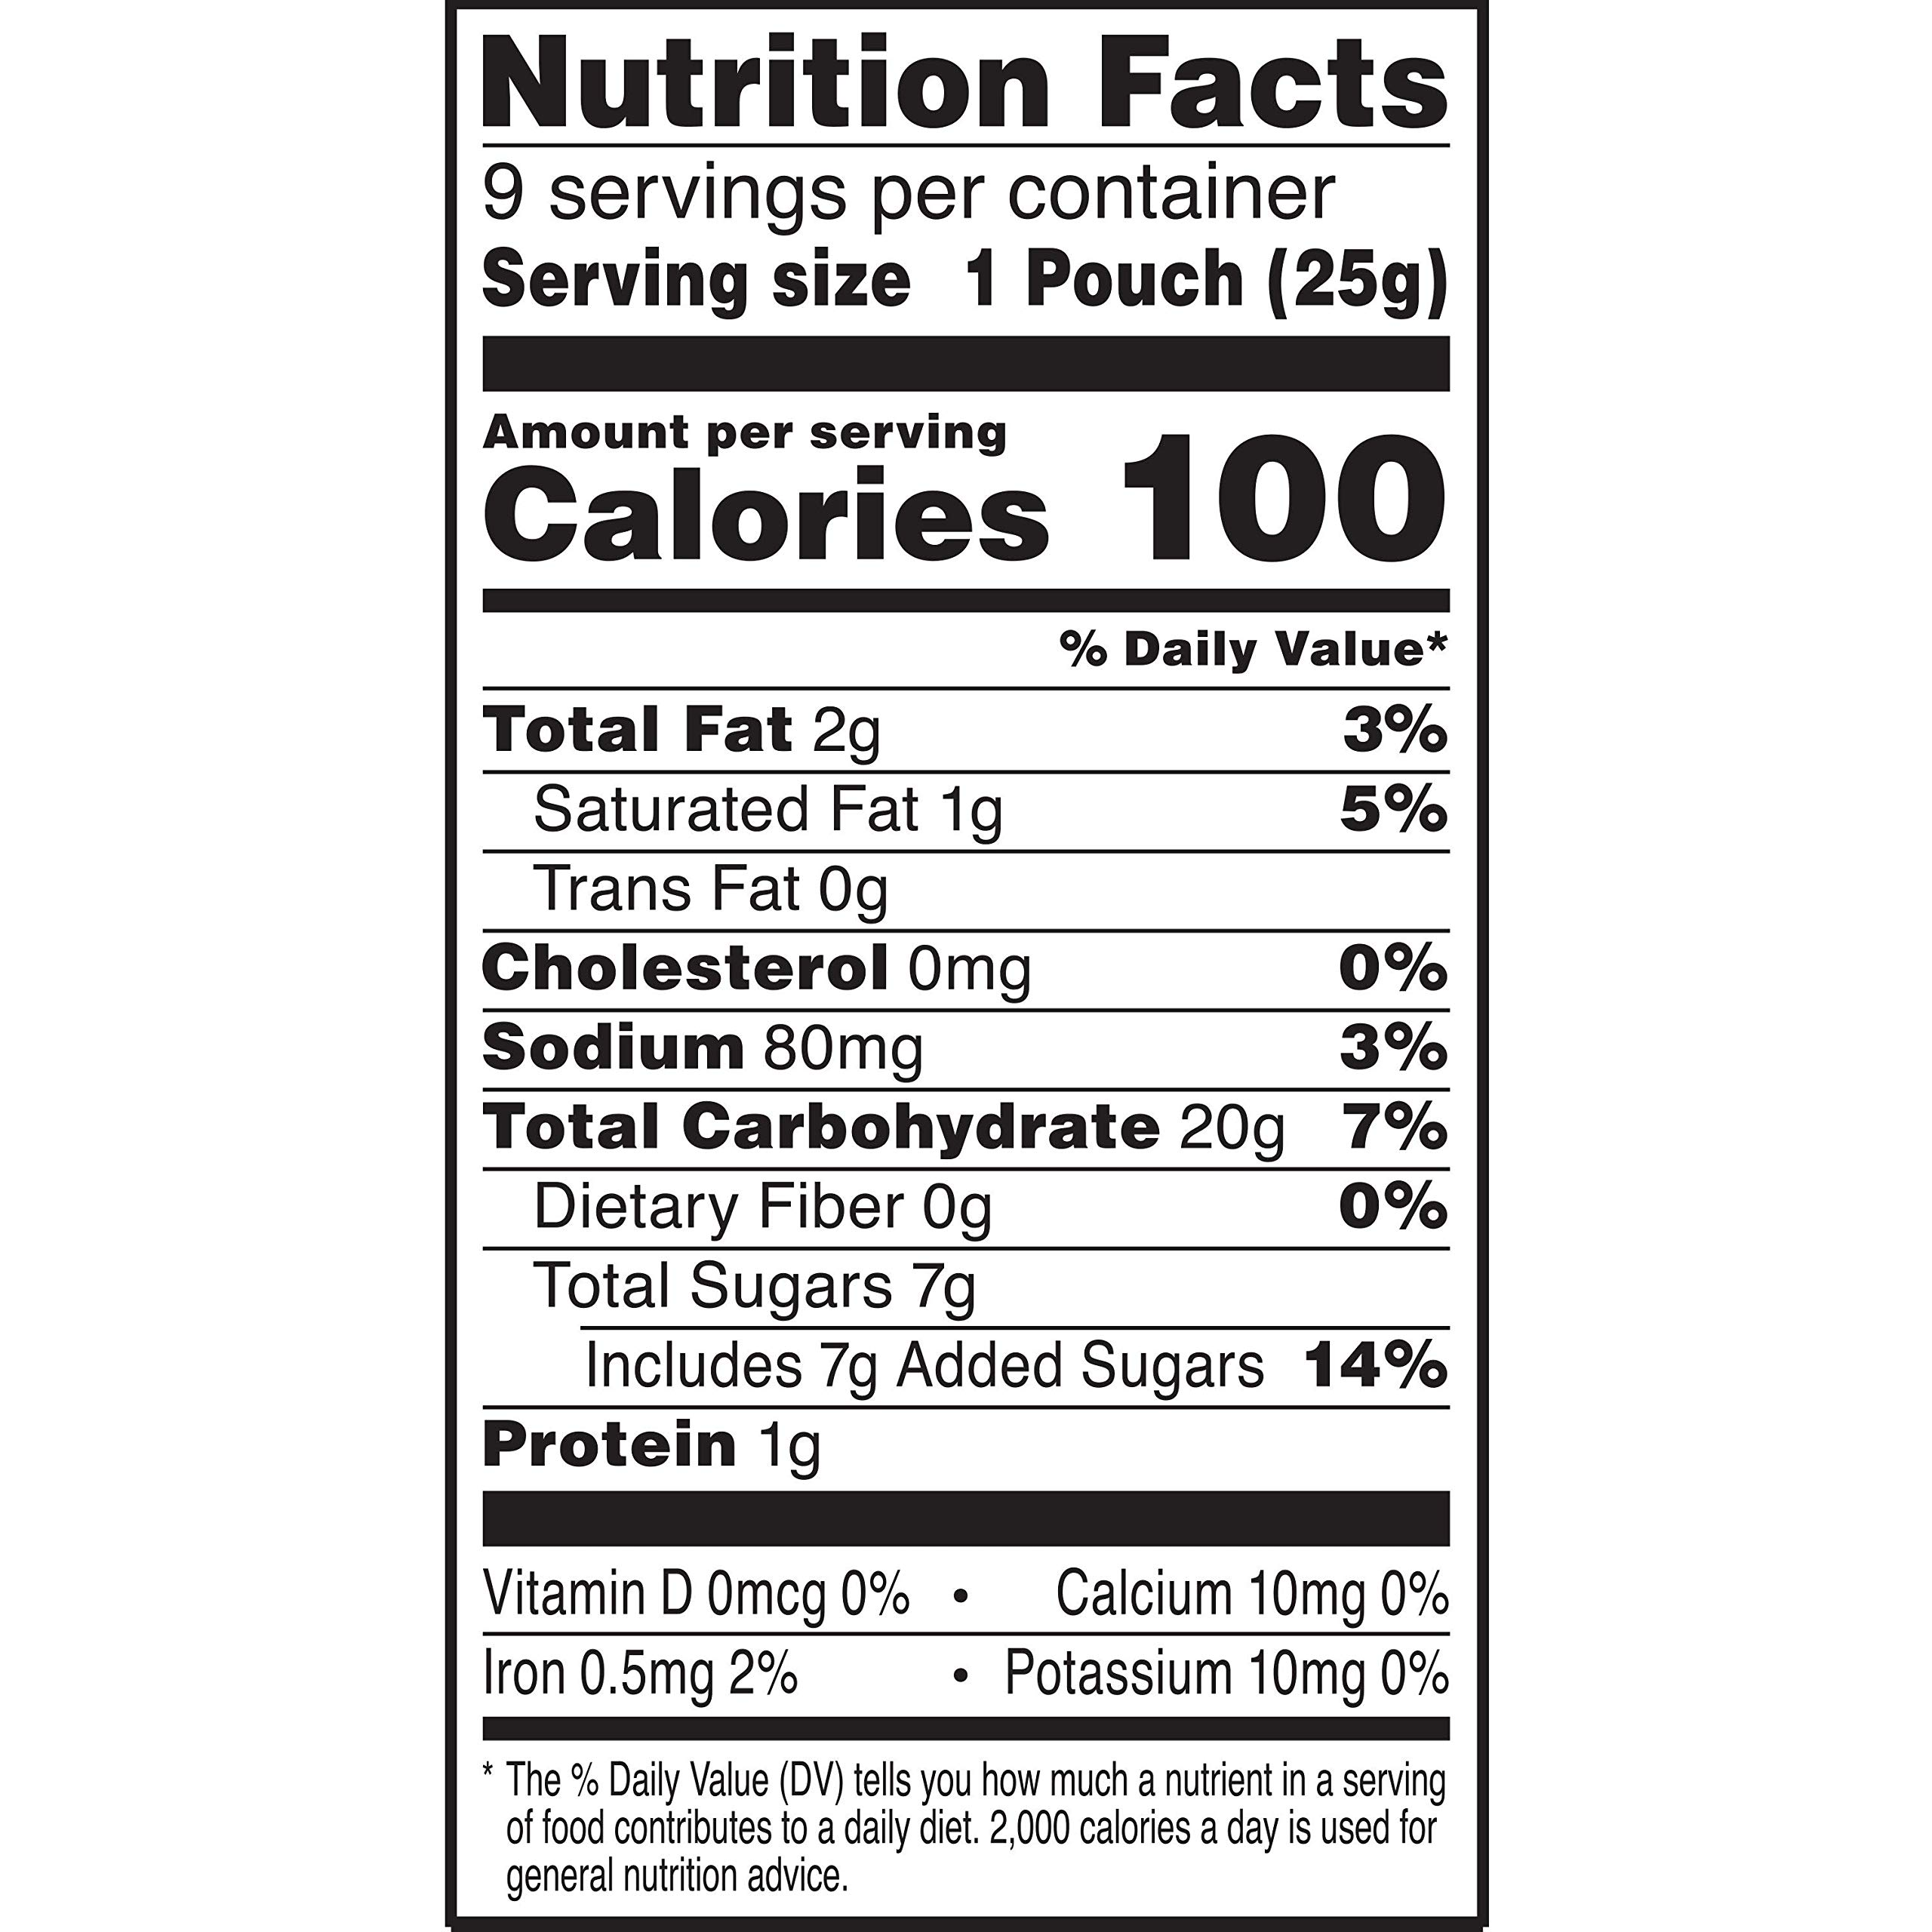 Kellogg's Special K Pastry Crisps, Blueberry, Bulk Size, 162 Count (Pack of 9, 7.92 oz Trays) by Special K (Image #2)